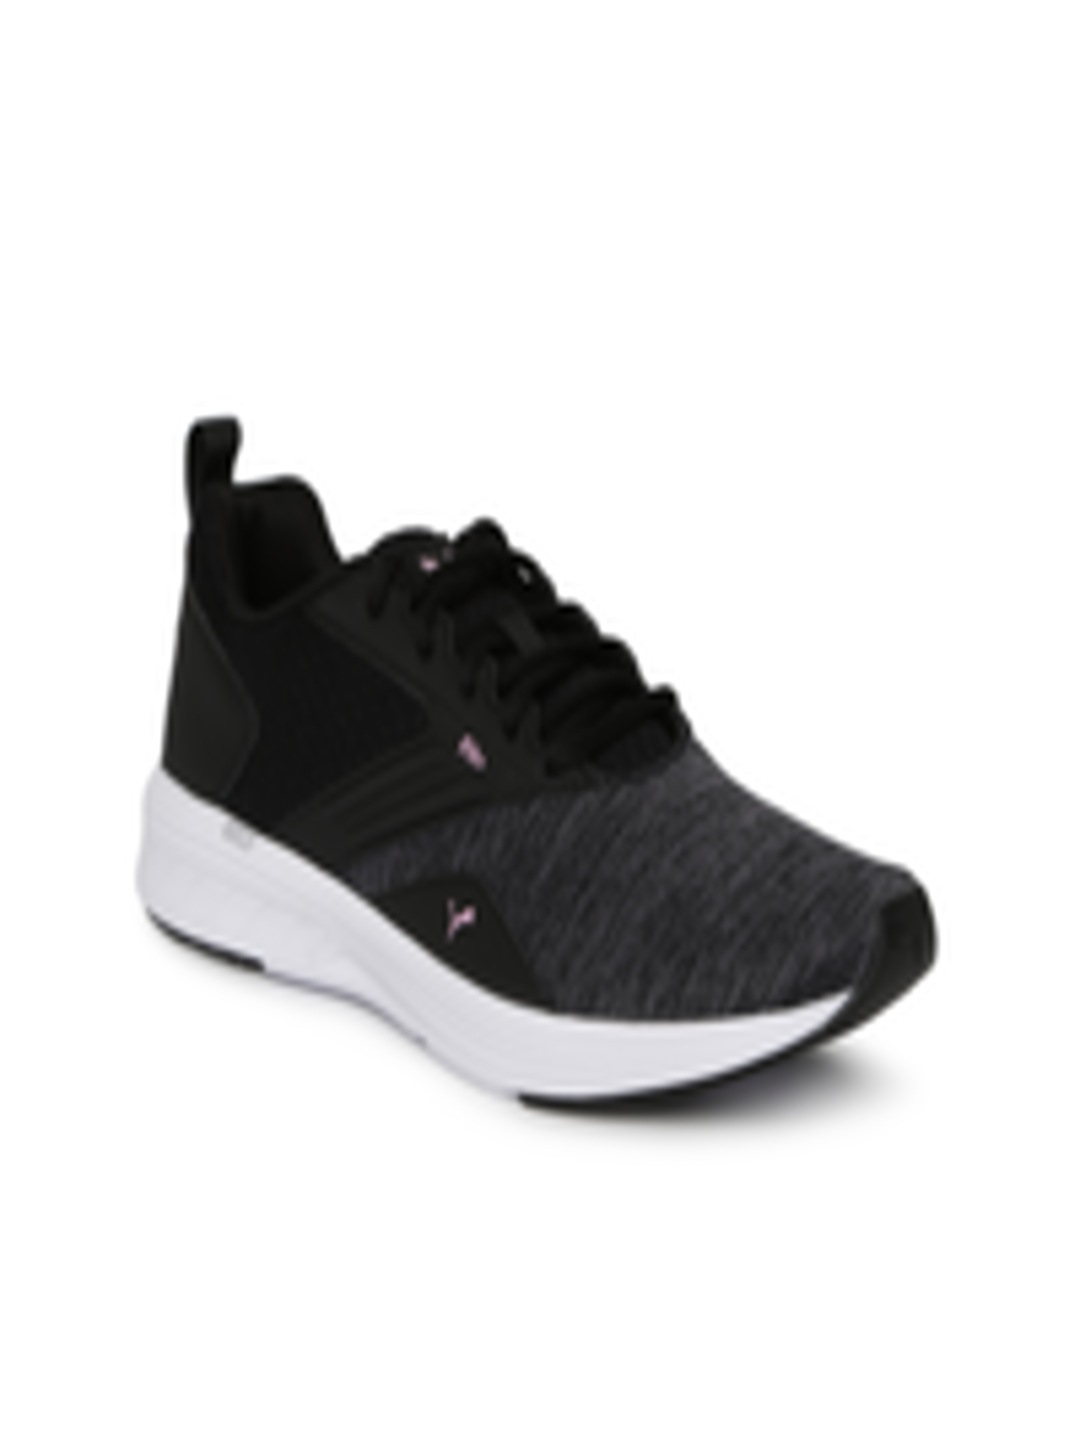 306f2414bfe Buy Puma Women Charcoal Grey NRGY Comet Running Shoes - - Footwear for Women